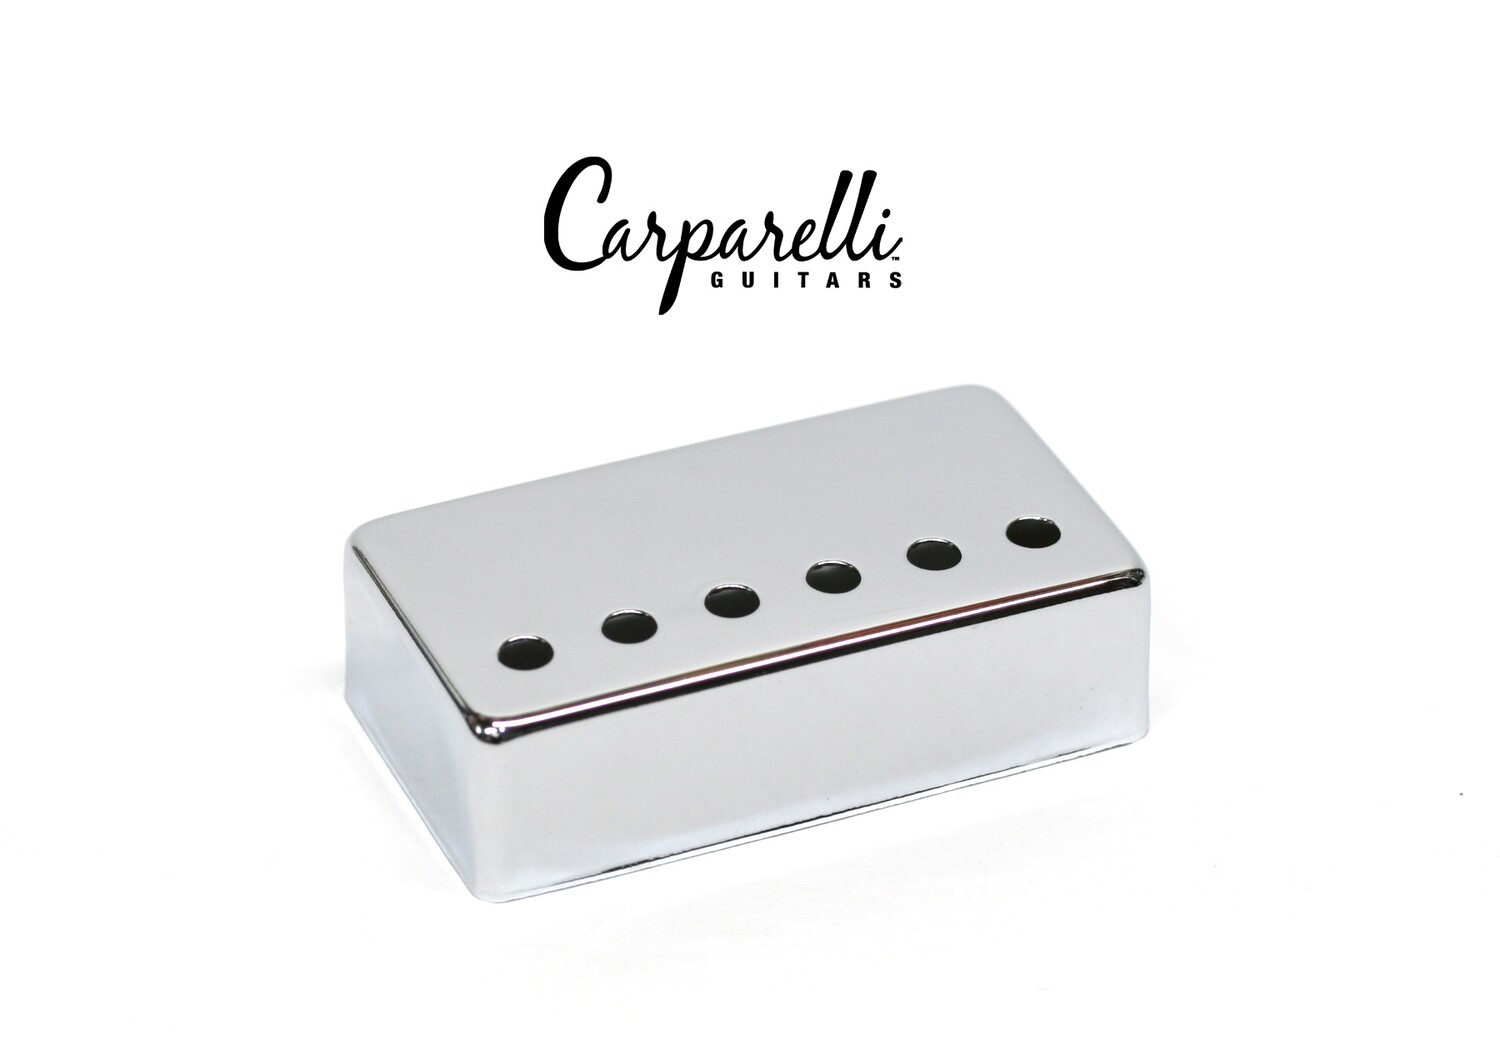 1 x Carparelli Metal Humbucker Cover 52mm Chrome